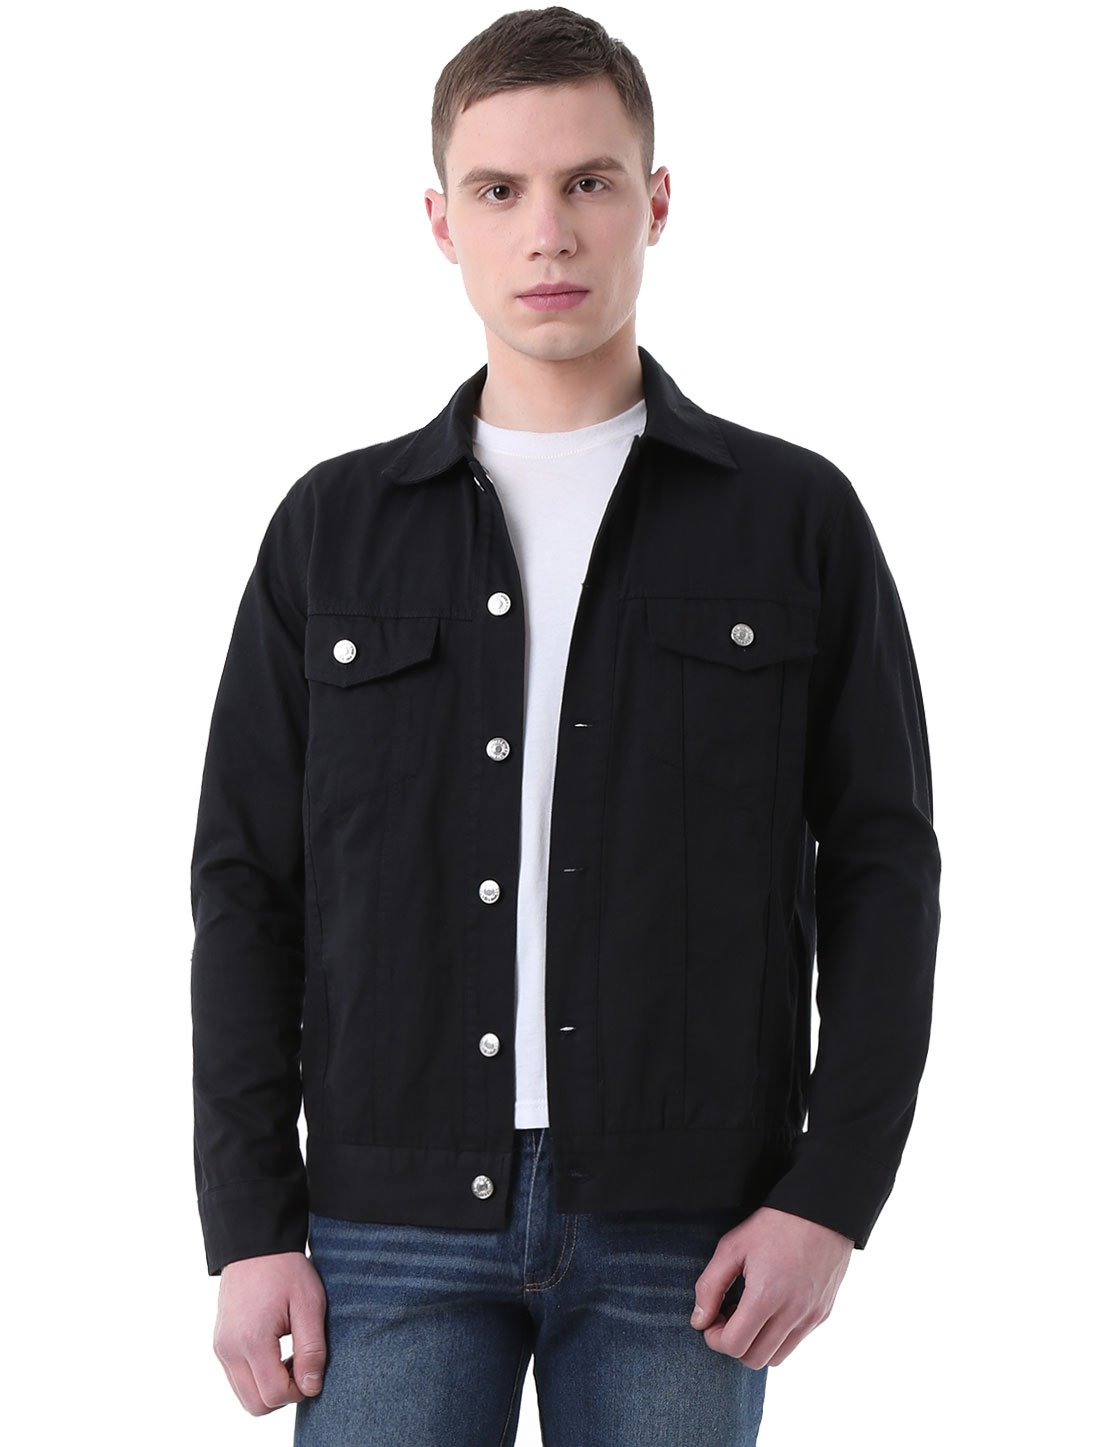 Allegra K Men Long Sleeves Single Breasted Front Casual Denim Jackets Black L by uxcell